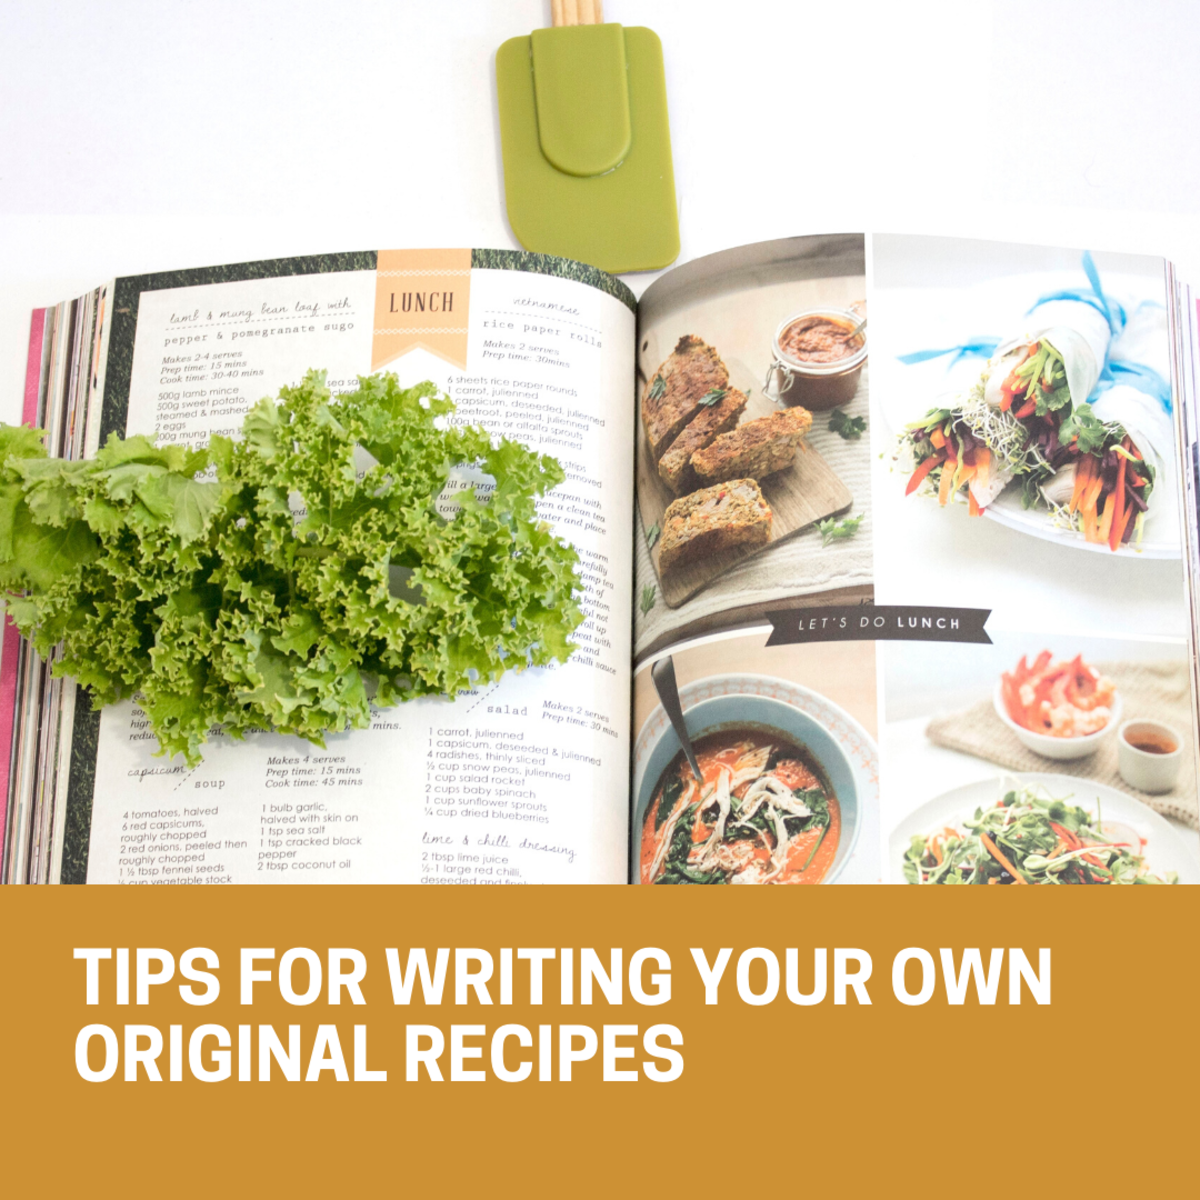 10 Tips for Writing Your Own Original Recipes - Delishably